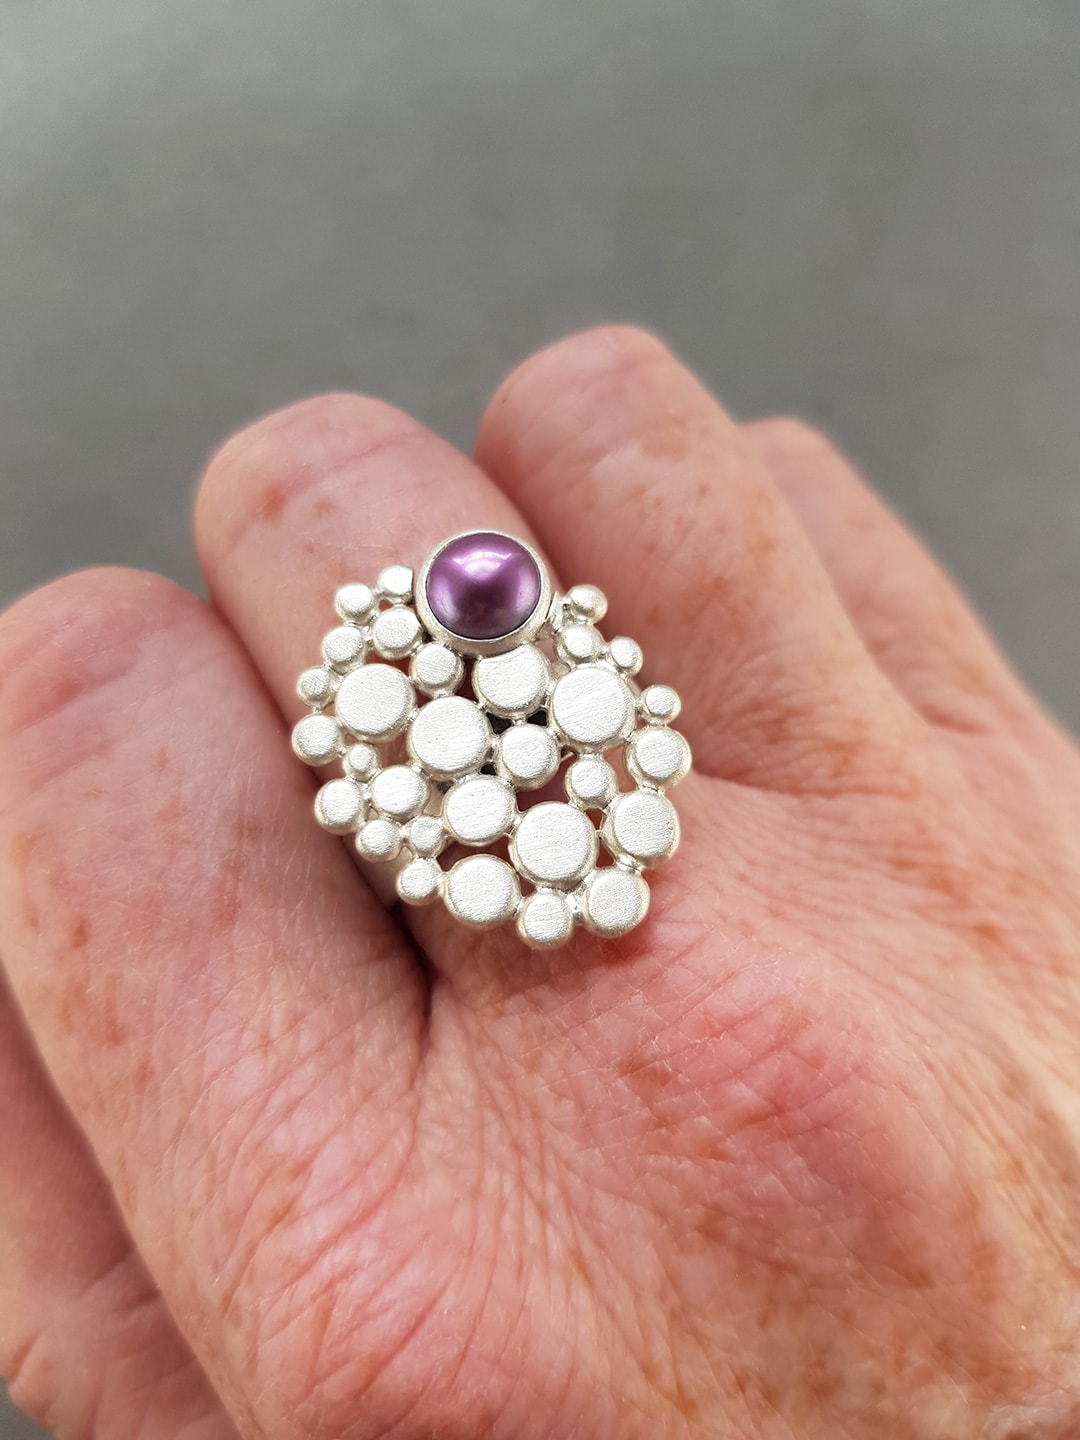 Multi pebble and pearl ring commission on hand